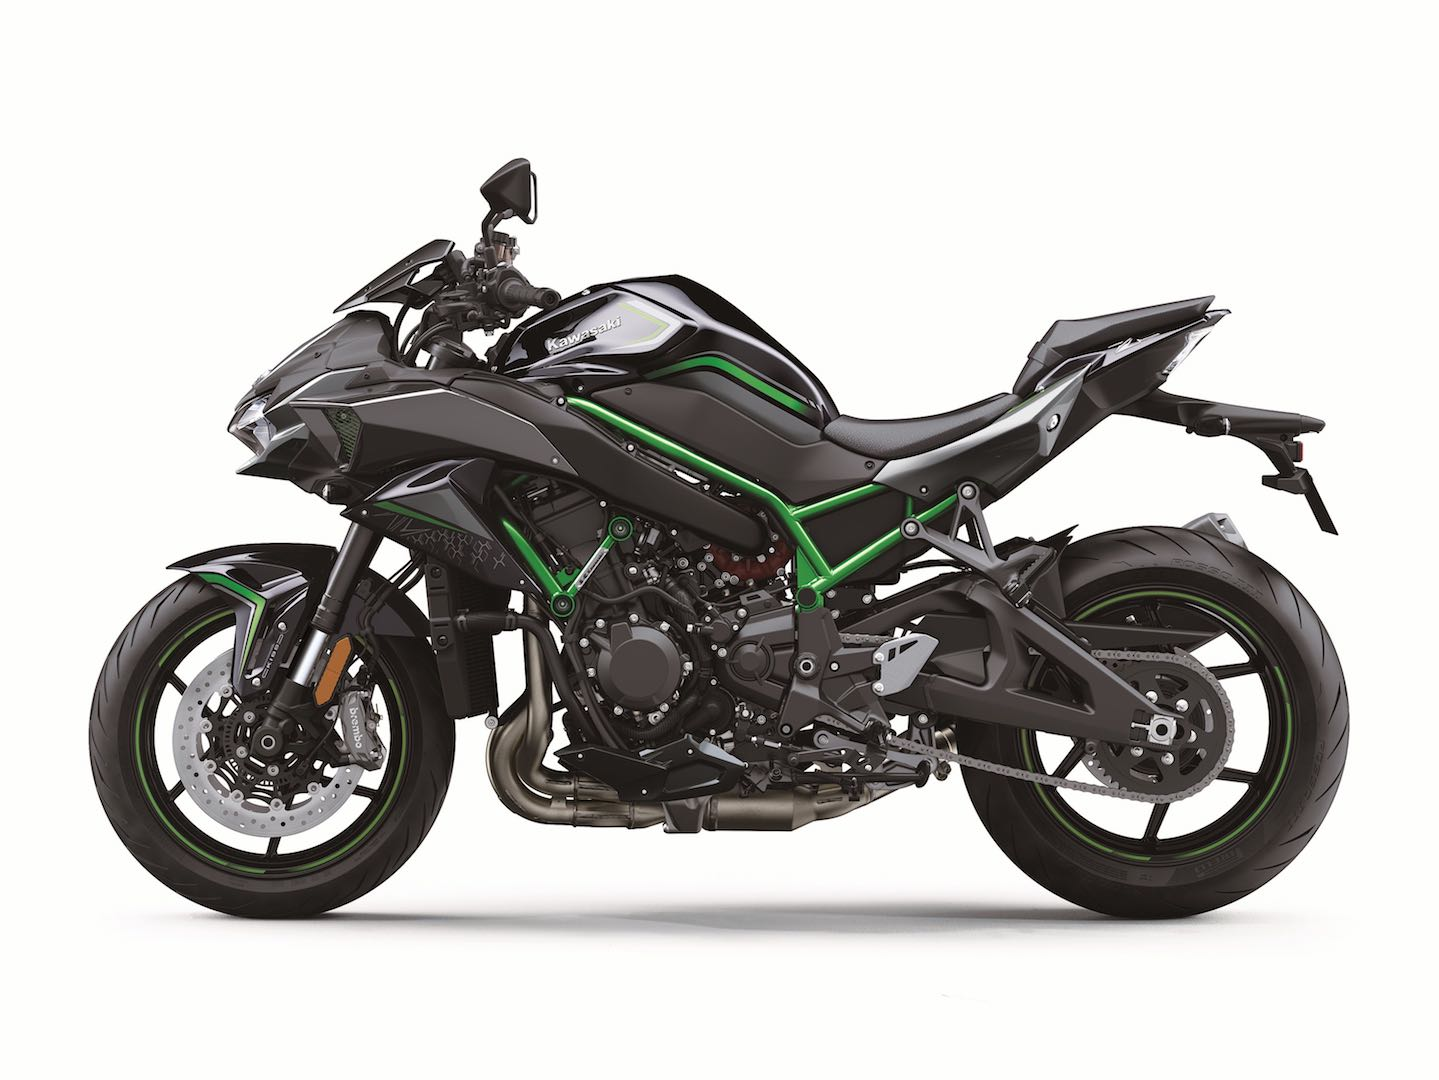 2020 Kawasaki Z H2 Unveiled: Supercharged Naked